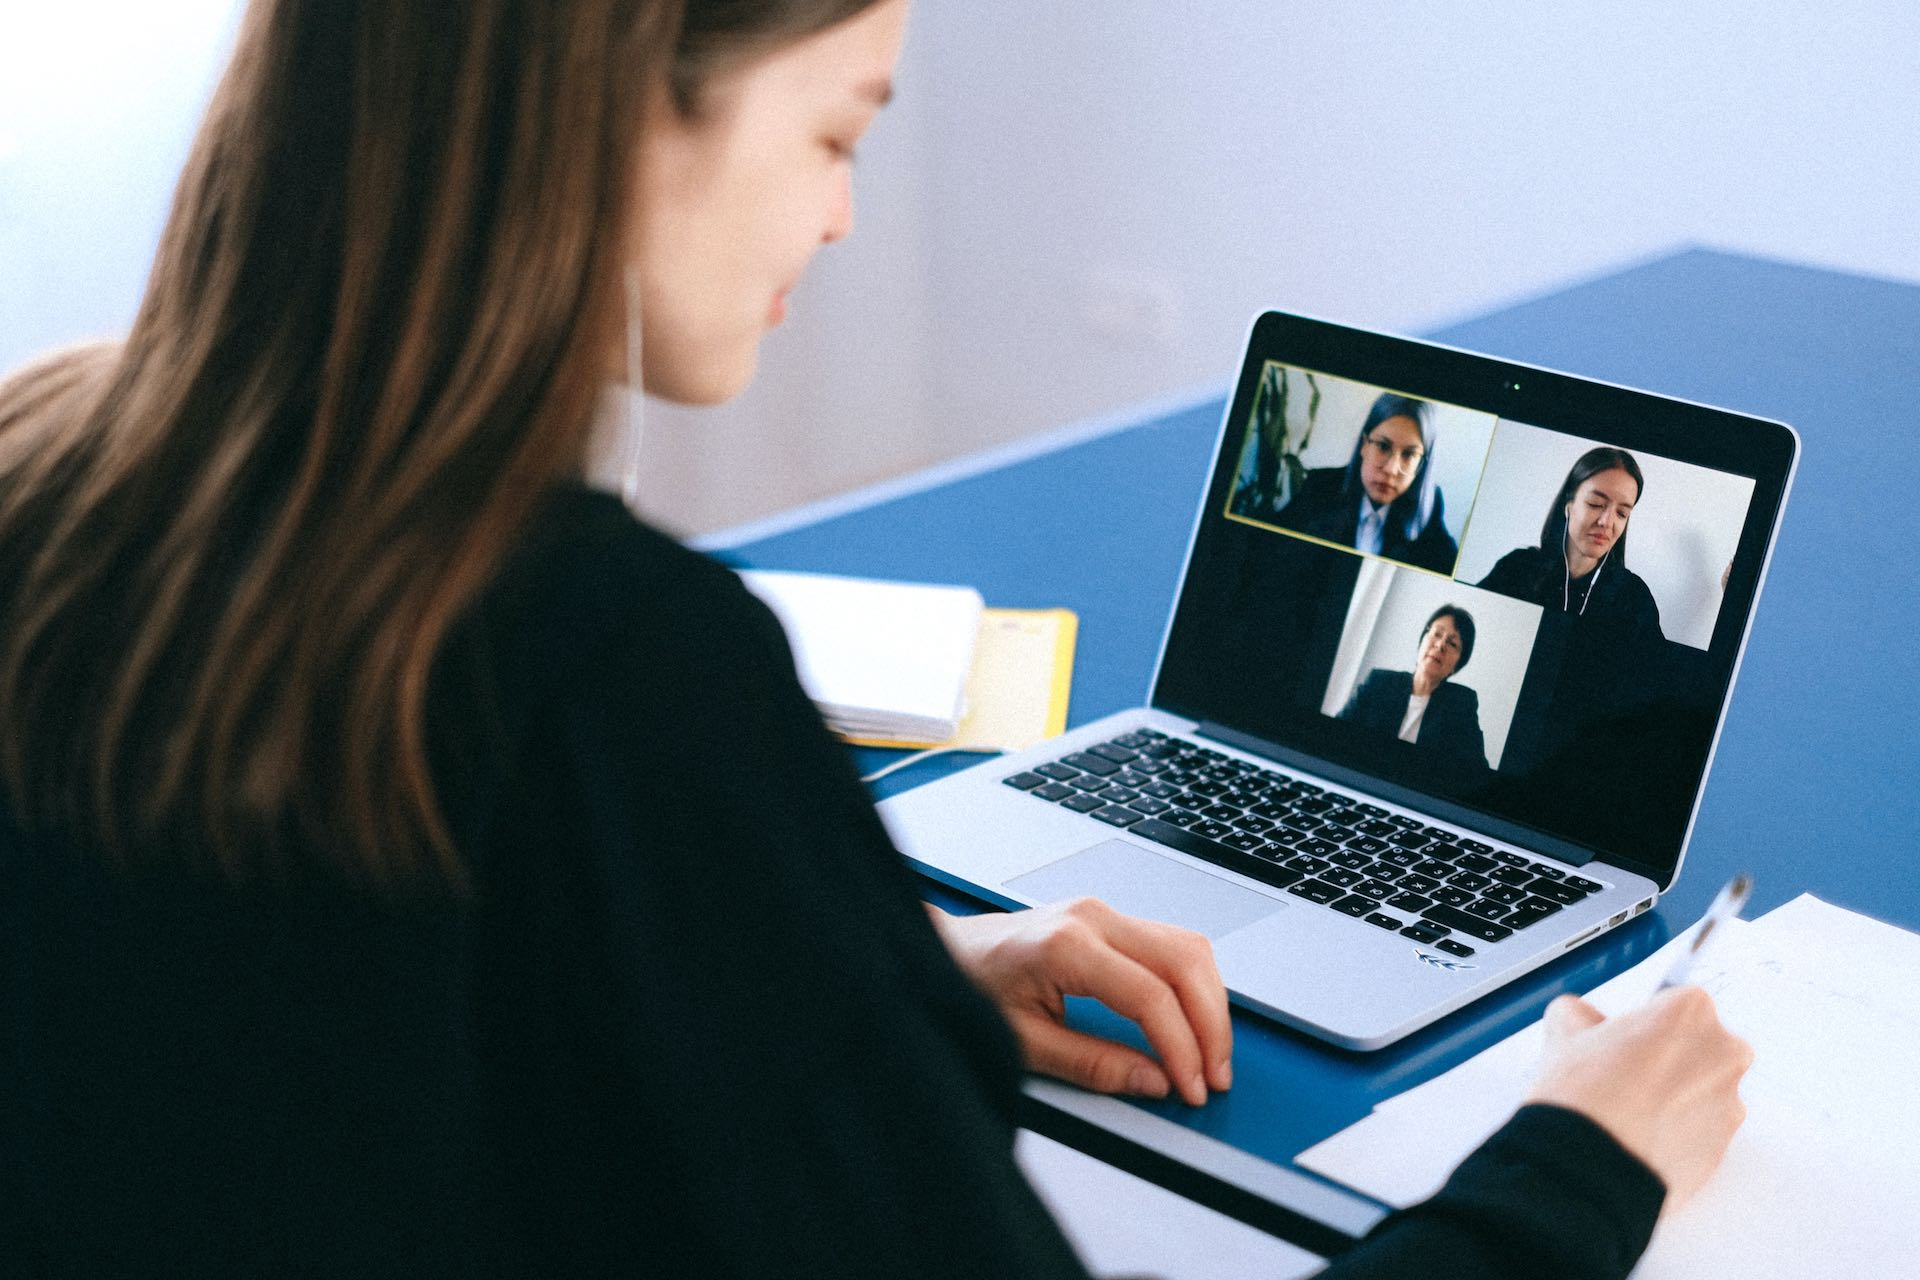 A young woman interviewing in a home office on a Zoom call with three managers.